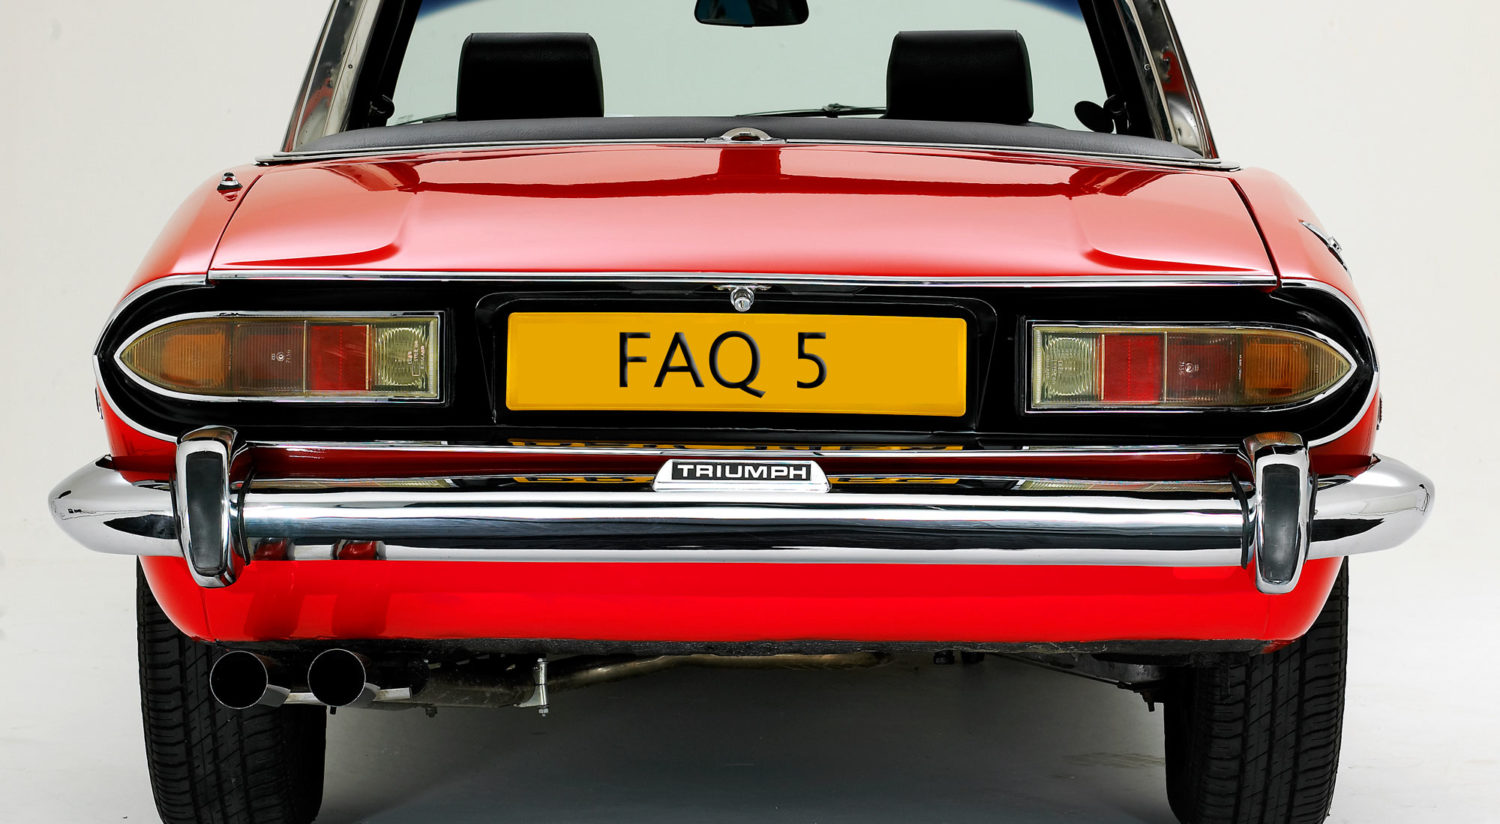 A red Triumph car with the number plate FAQ 5